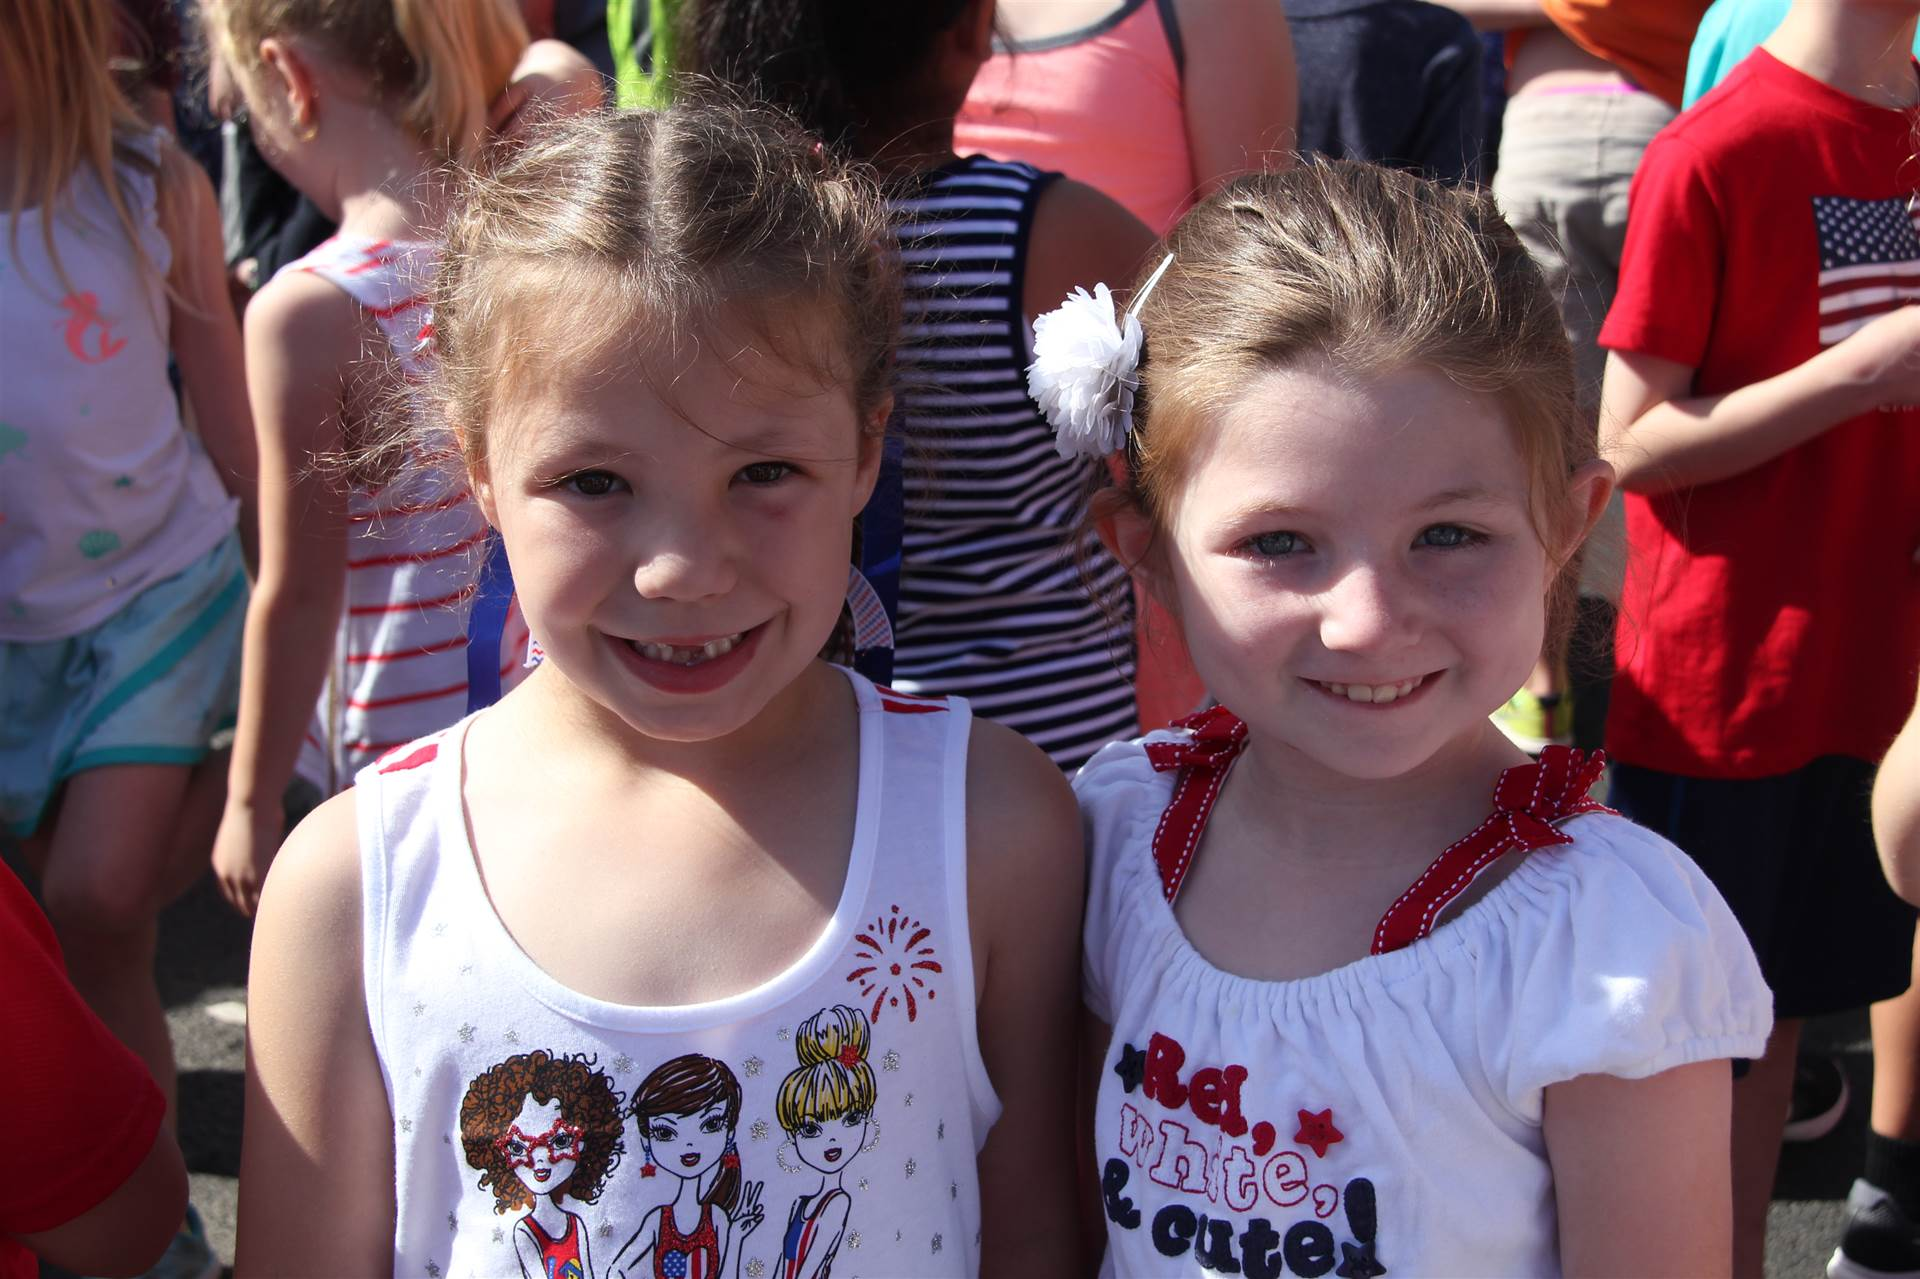 two Port Dickinson Elementary students smile at annual flag day event